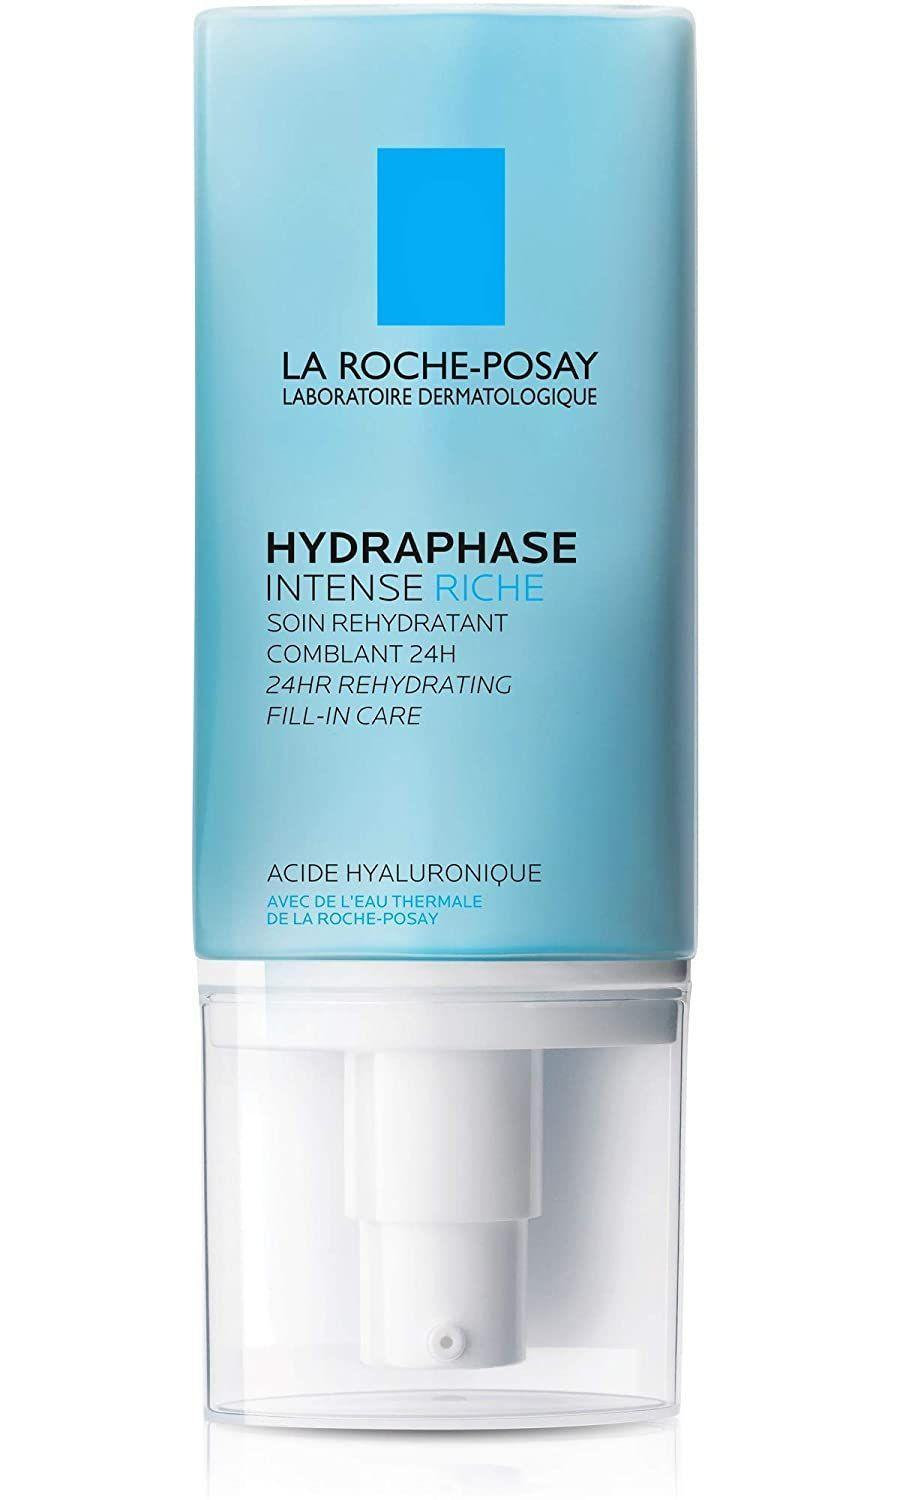 """<p><strong>La Roche-Posay</strong></p><p>amazon.com</p><p><strong>$35.99</strong></p><p><a href=""""https://www.amazon.com/dp/B003TRW590?tag=syn-yahoo-20&ascsubtag=%5Bartid%7C10058.g.26596733%5Bsrc%7Cyahoo-us"""" rel=""""nofollow noopener"""" target=""""_blank"""" data-ylk=""""slk:SHOP IT"""" class=""""link rapid-noclick-resp"""">SHOP IT</a></p><p>As cold weather approaches, so does the prospect of that tight, stingy feeling that comes with a dehydrated complexion. Slather on a thick layer of this and your skin won't succumb to the season's harshness. </p>"""